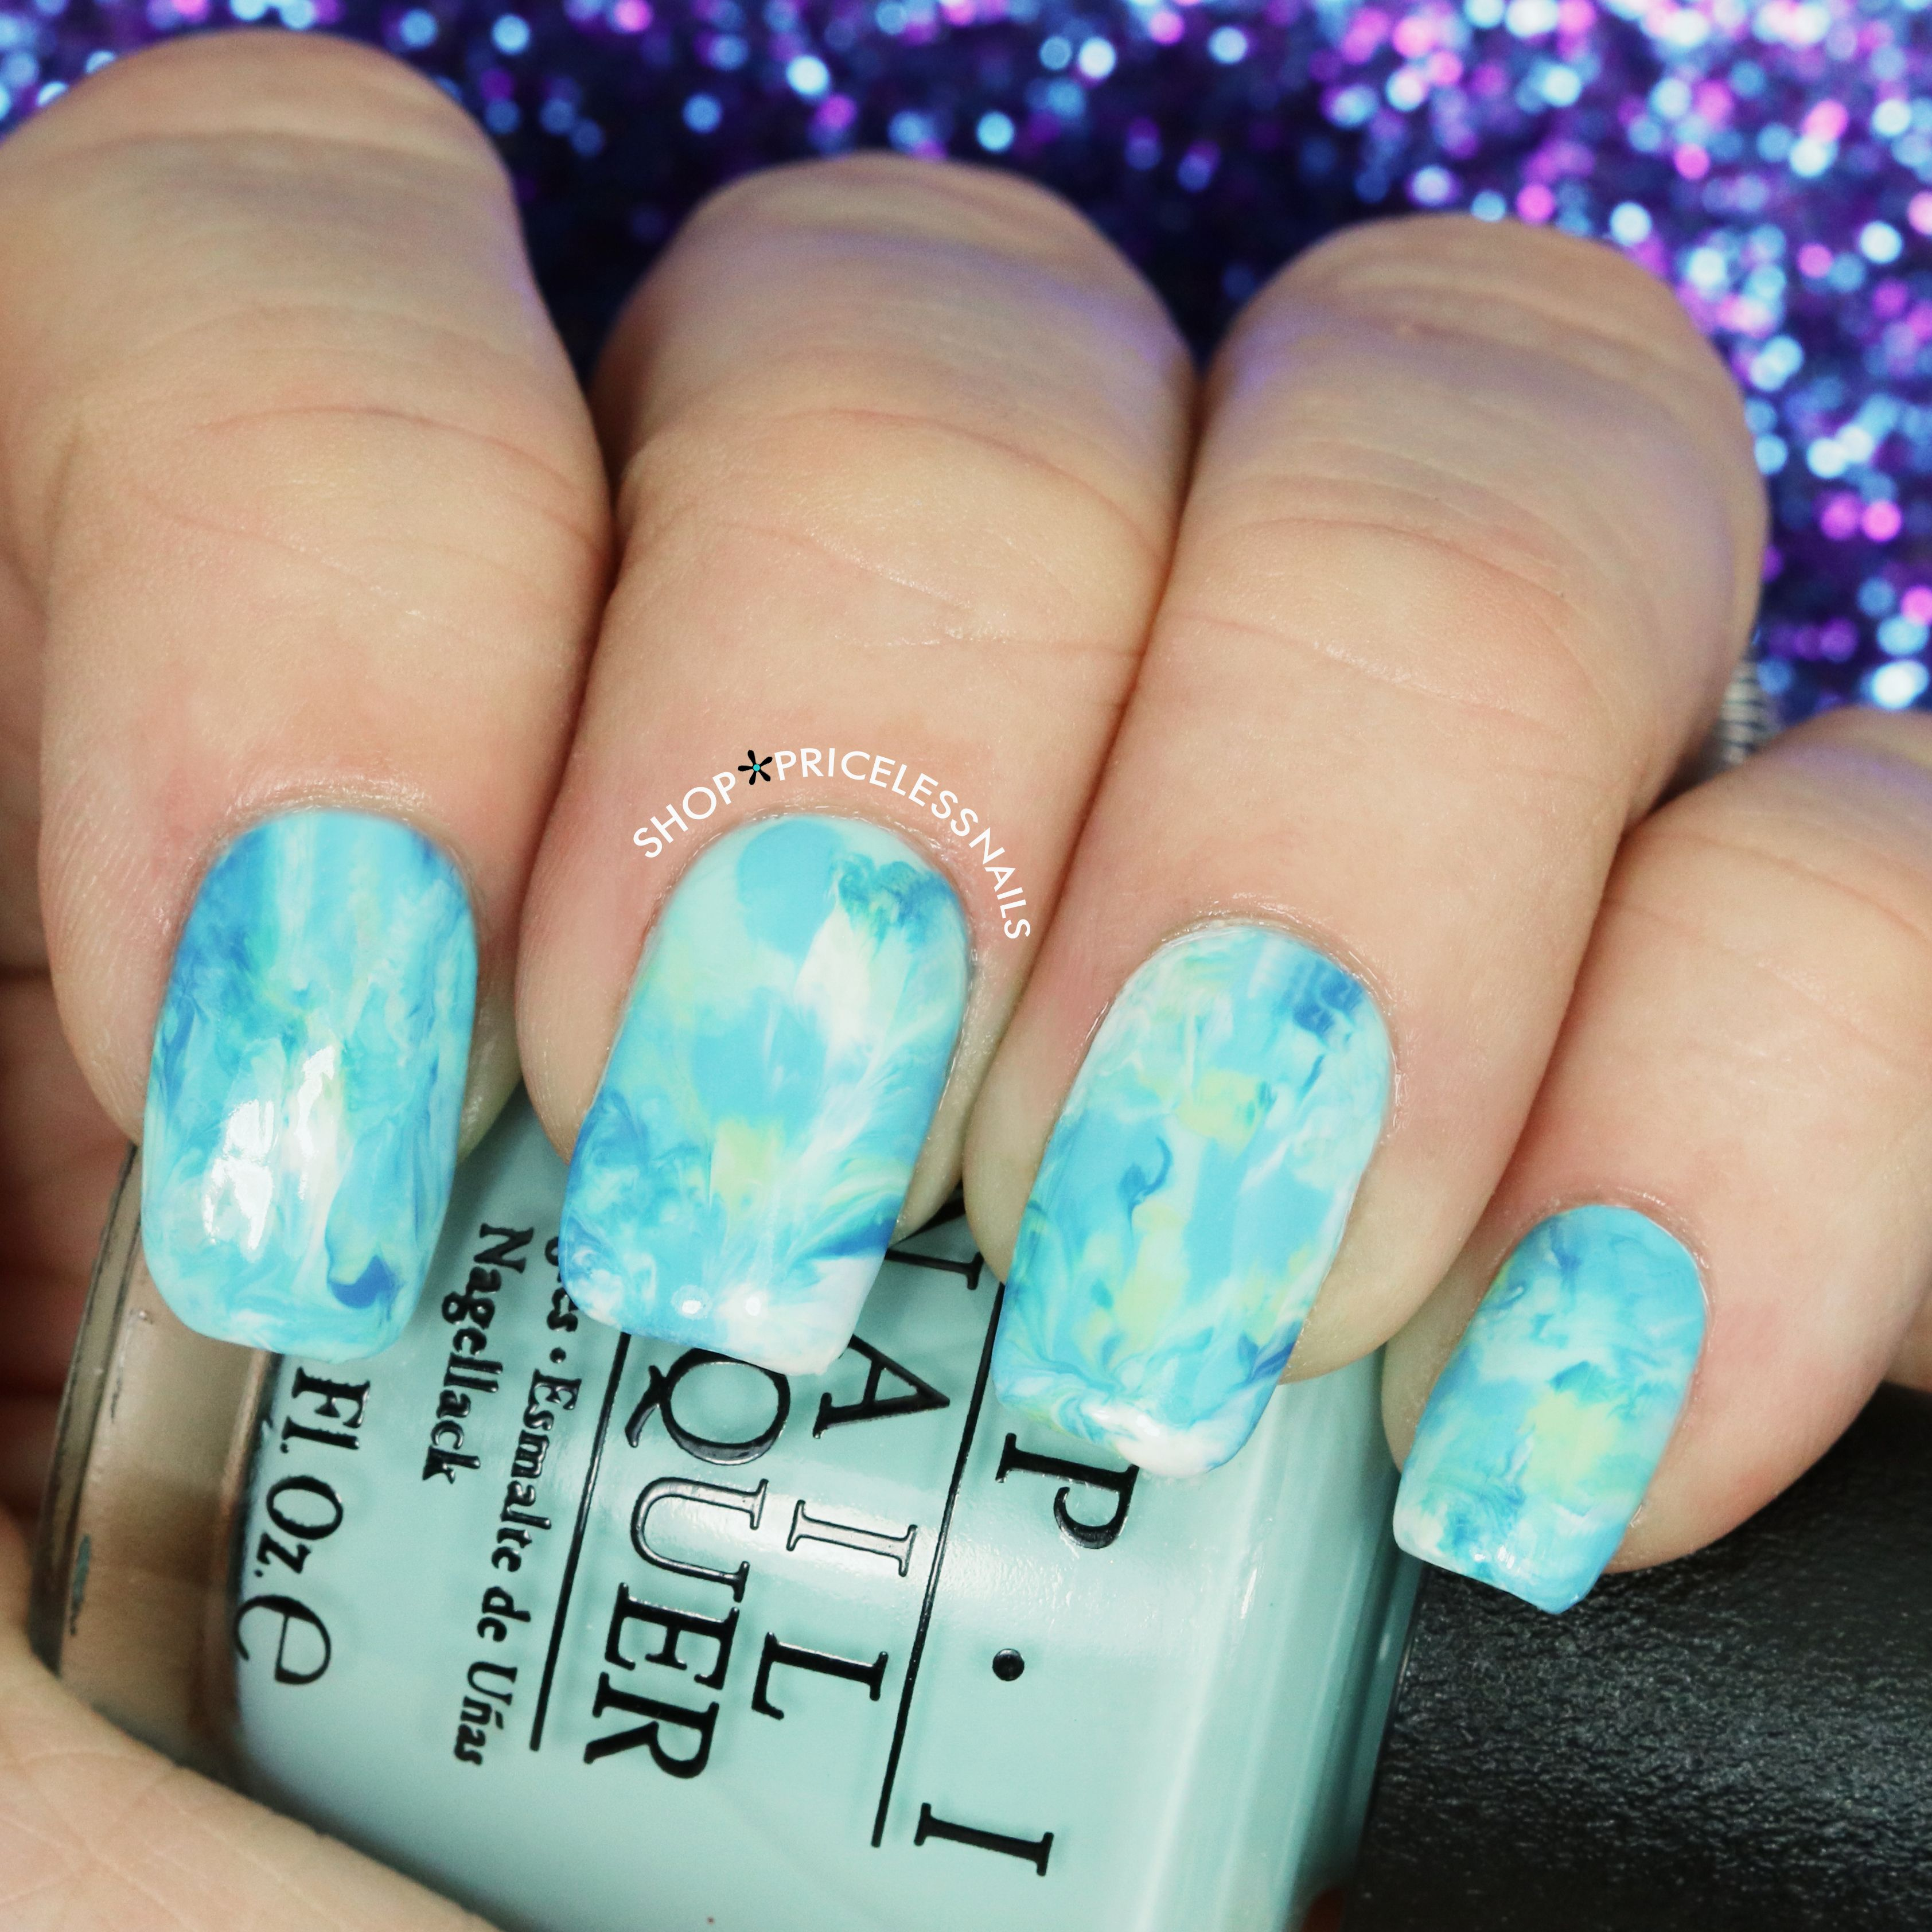 ✨ Splash into spring with these watercolor nails! ✨ | Nails ...